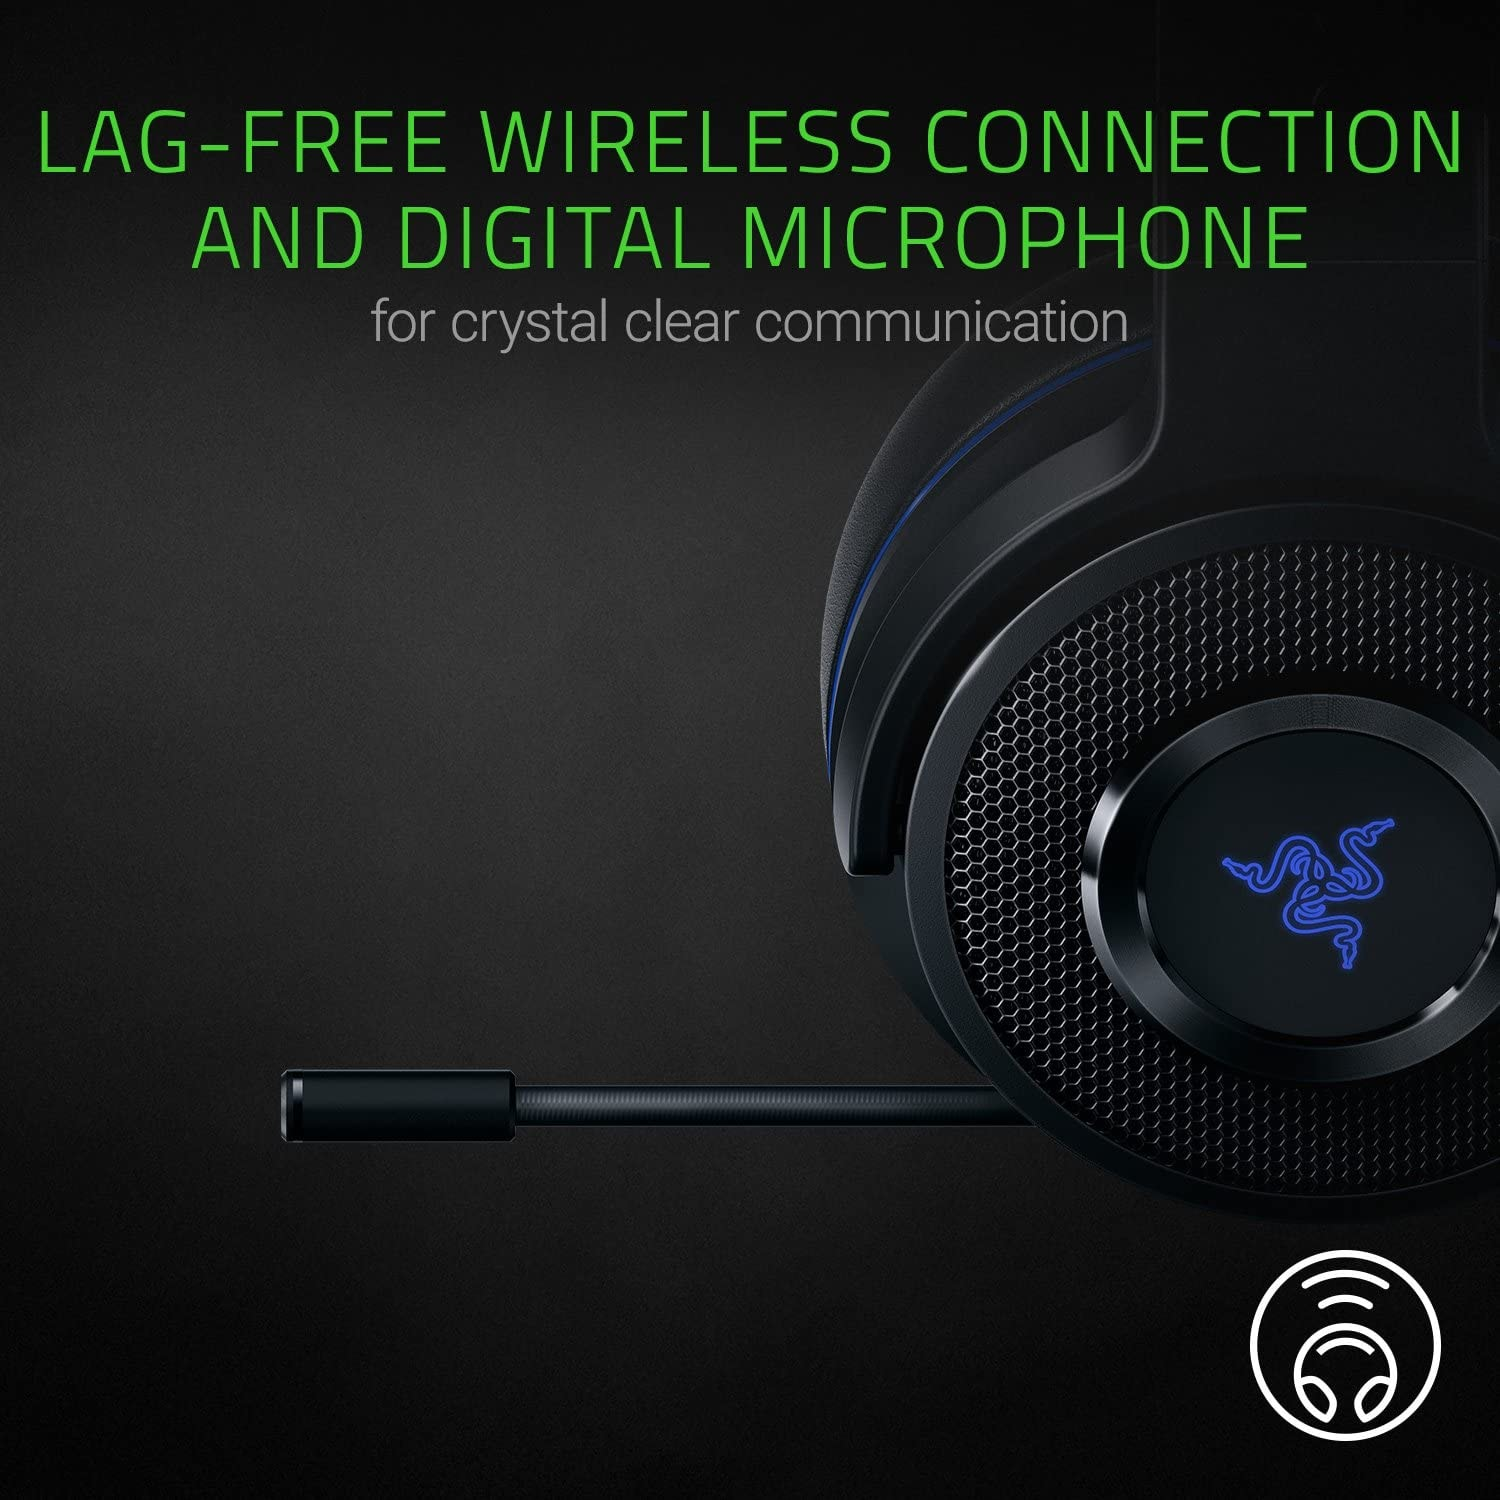 Razer Thresher 7.1 for PlayStation - Wireless Gaming Headset for PS4, PS5 and PC Wireless Headphones, Dolby 7.1 Black - 4